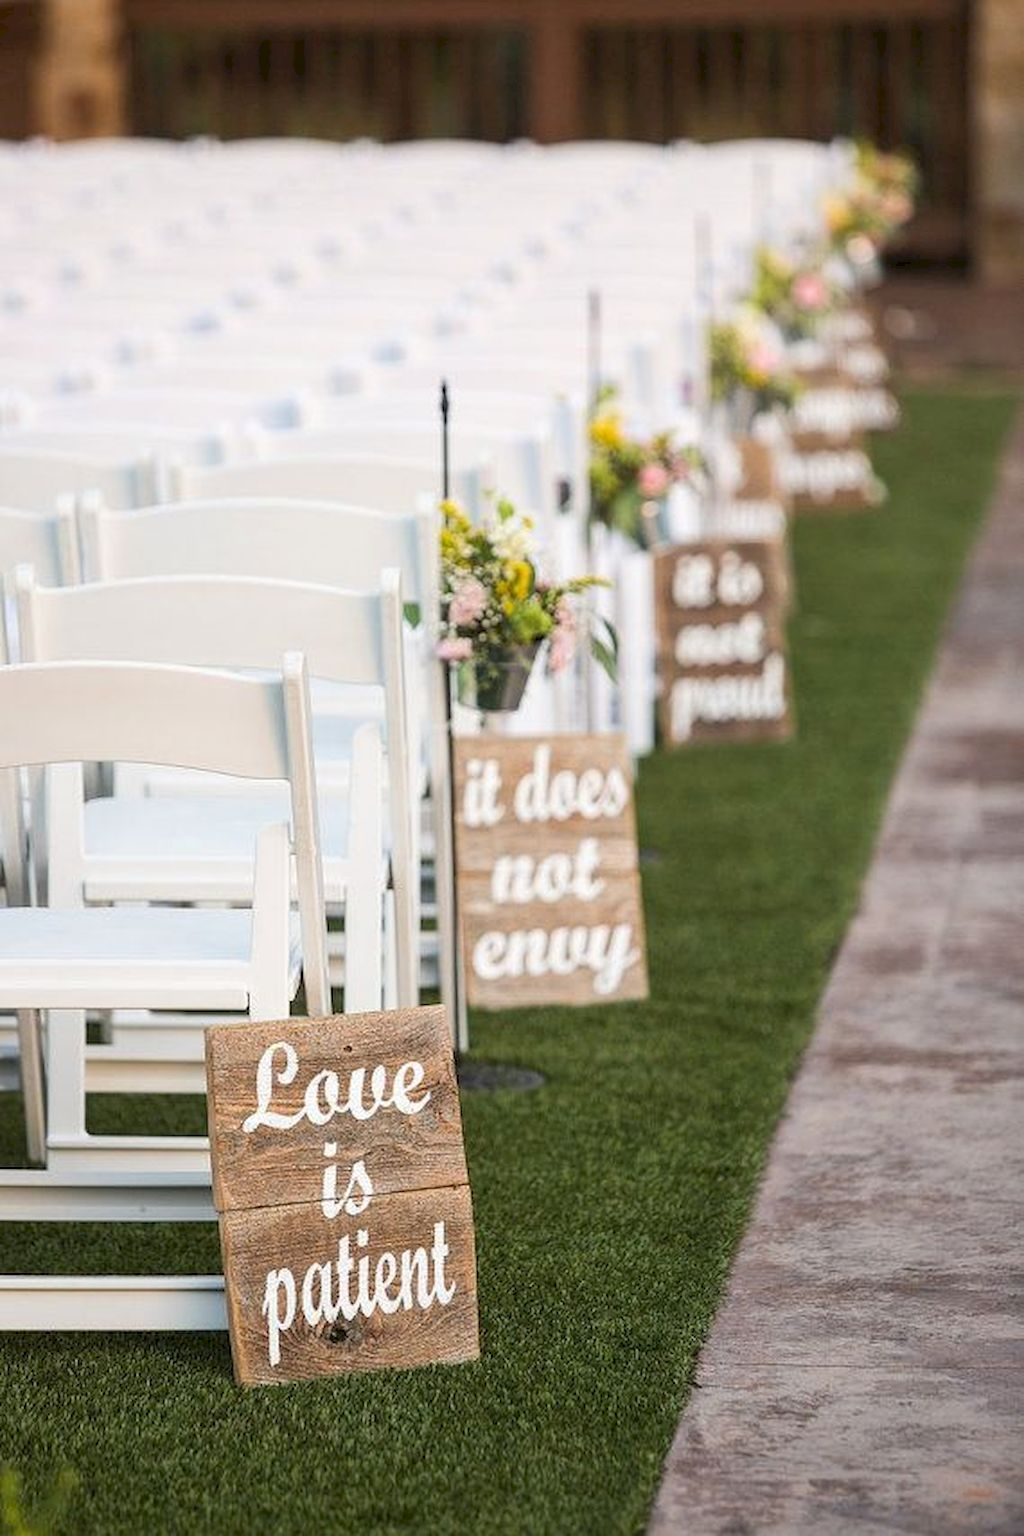 Garden wedding decoration ideas   Elegant Outdoor Wedding Decor Ideas on A Budget  Budgeting